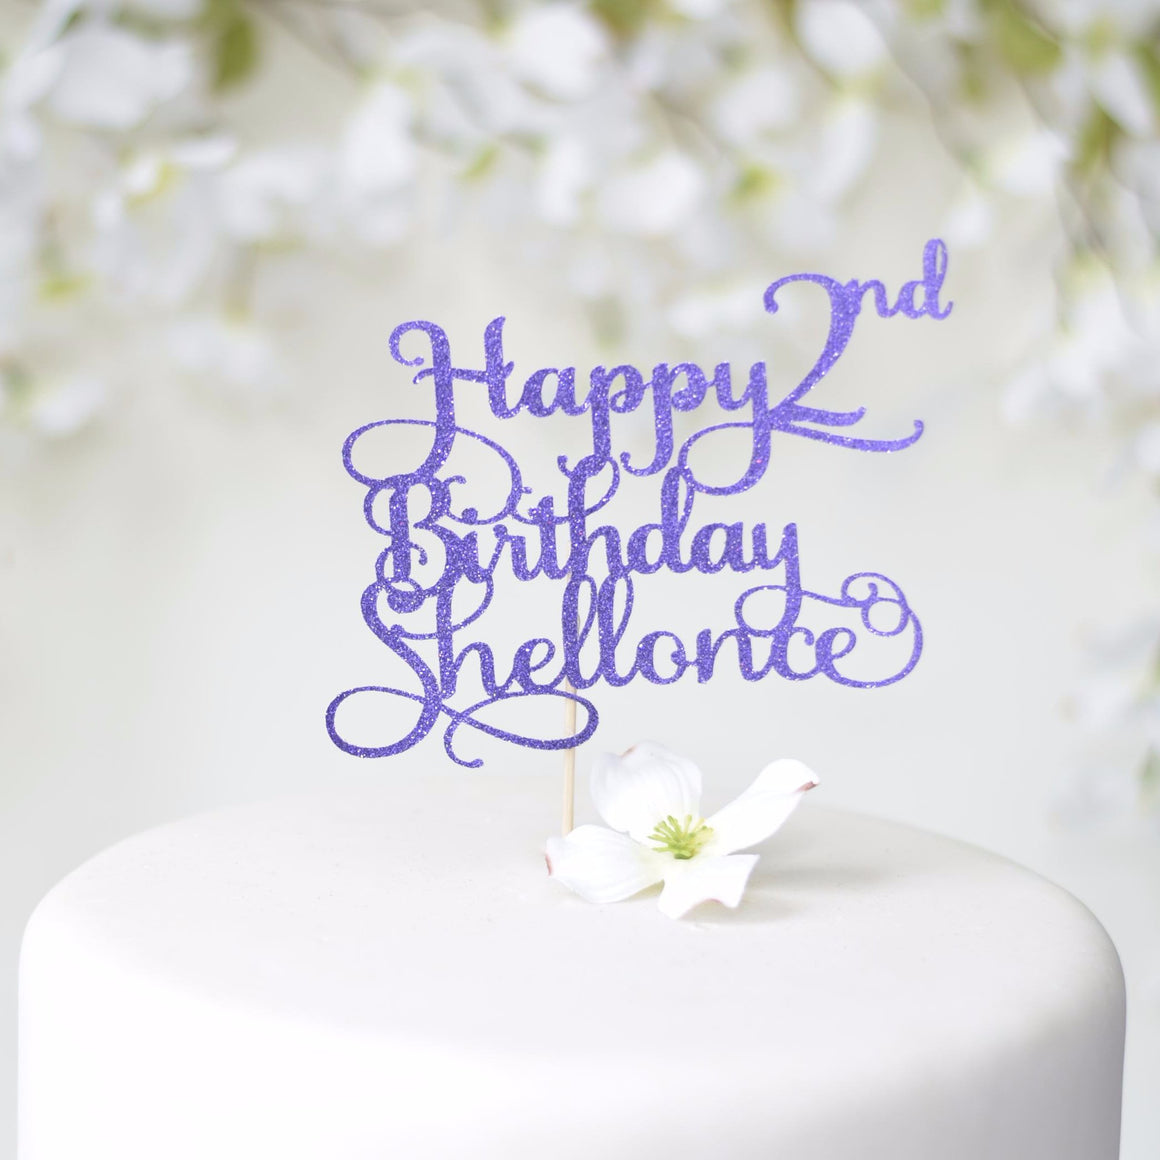 Happy 2nd Birthday Shellonce blue glitter cake topper